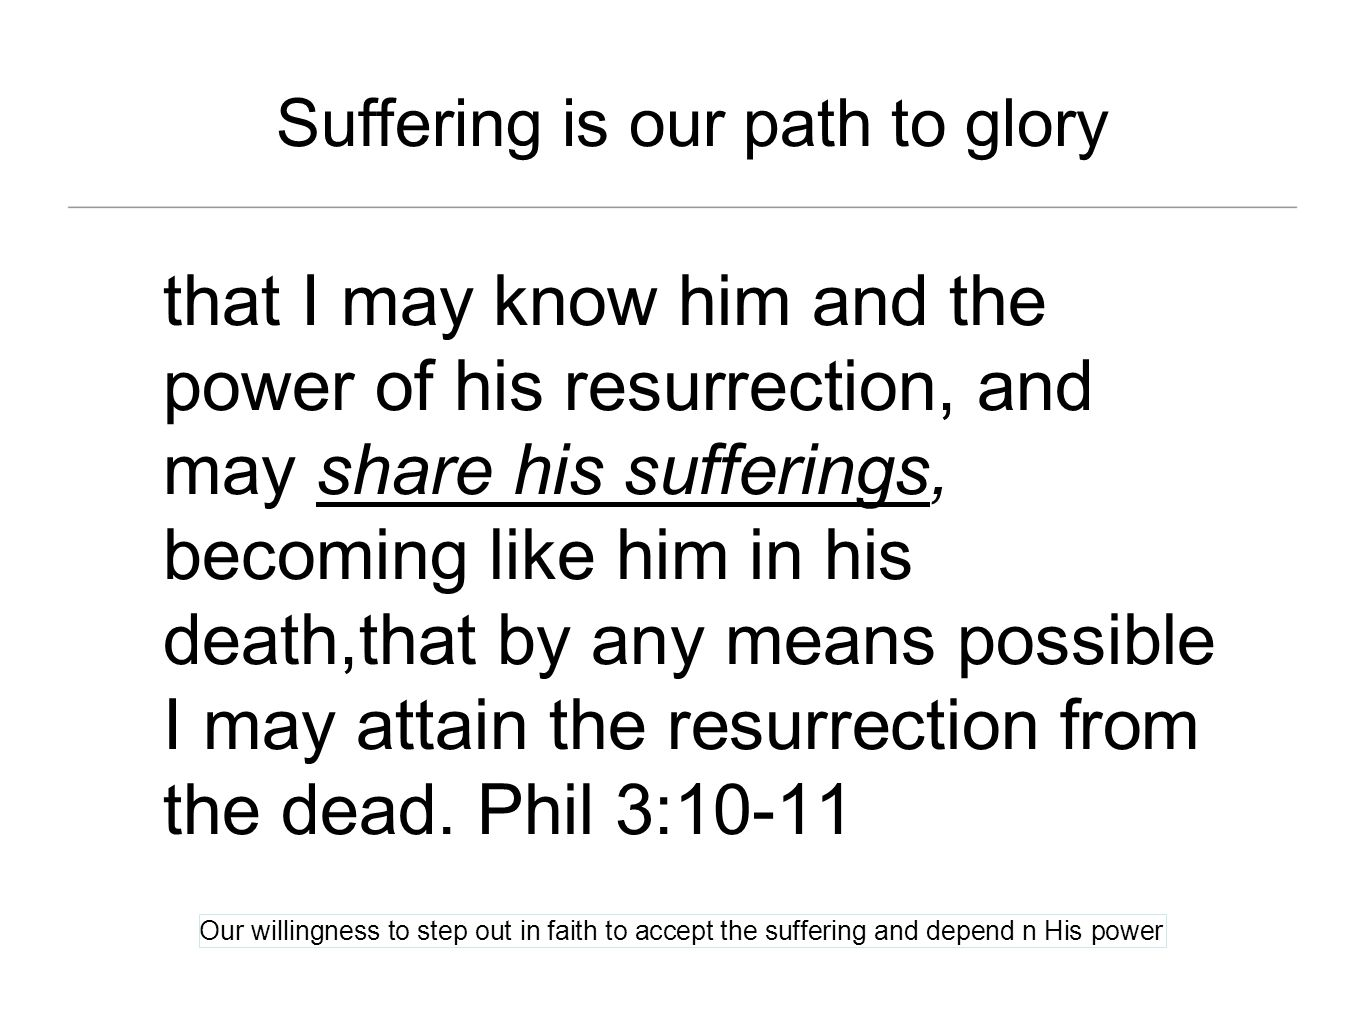 Suffering is our path to glory that I may know him and the power of his resurrection, and may share his sufferings, becoming like him in his death,tha